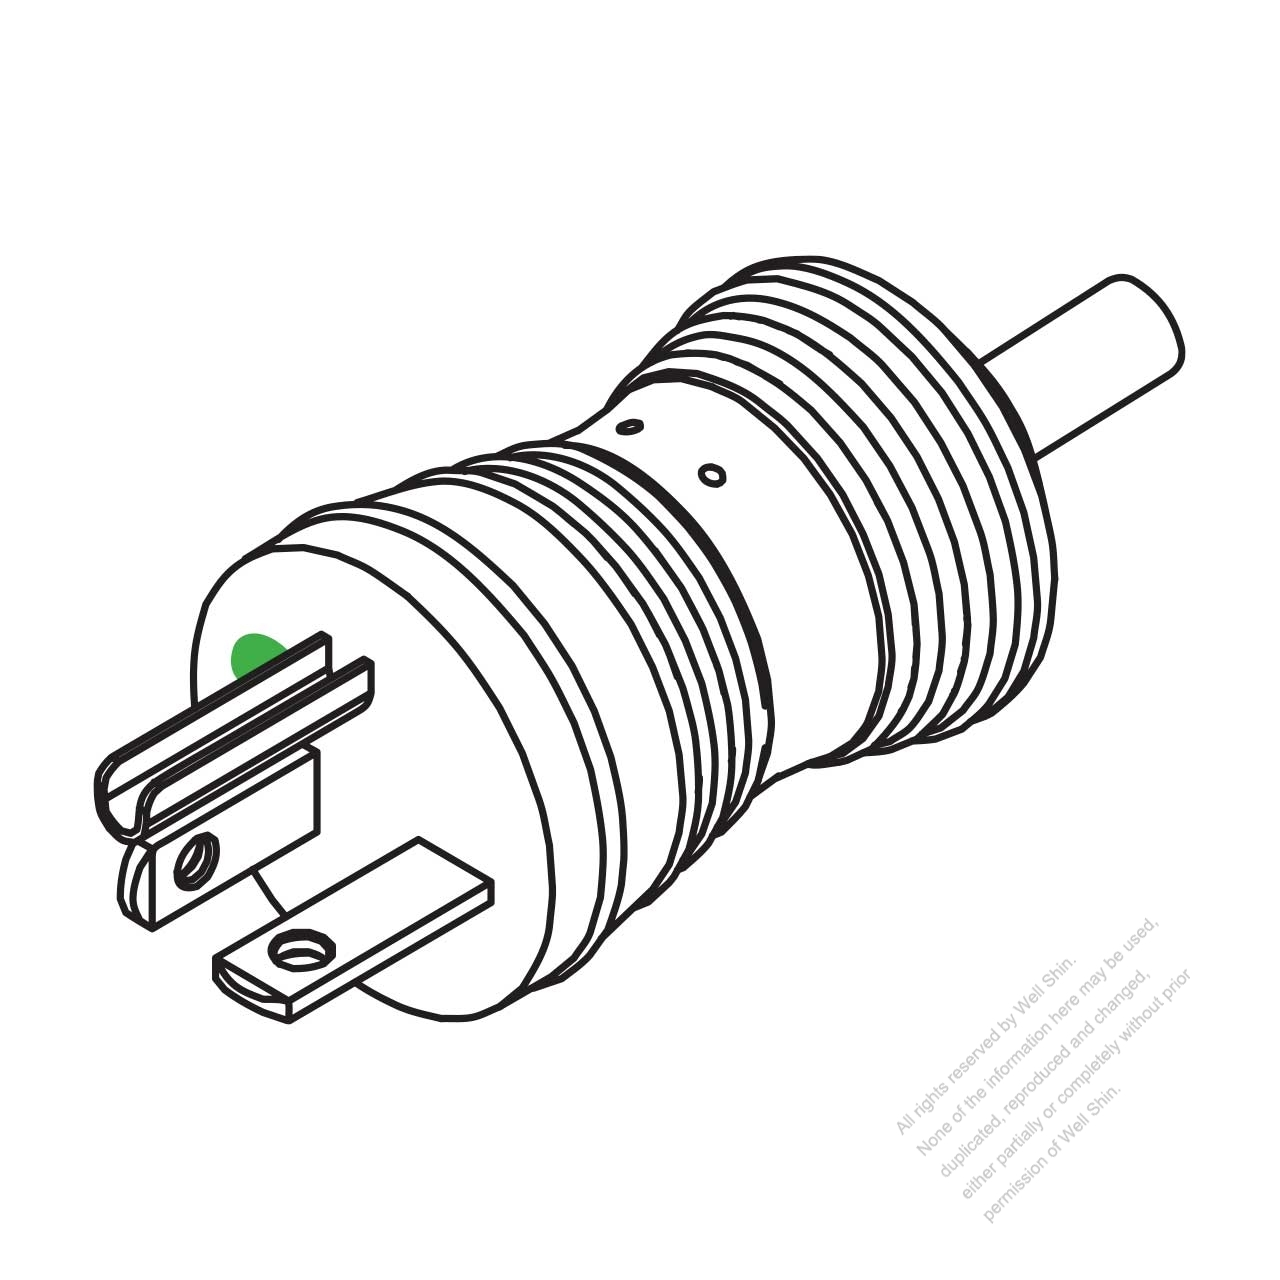 Cat 5 Punch Down Wiring Diagram in addition Cat5e Keystone Wiring Diagram furthermore Crossover Cable likewise Cat5e Schematics in addition Cat6 Wiring Scheme. on cat 5e crossover wiring diagram